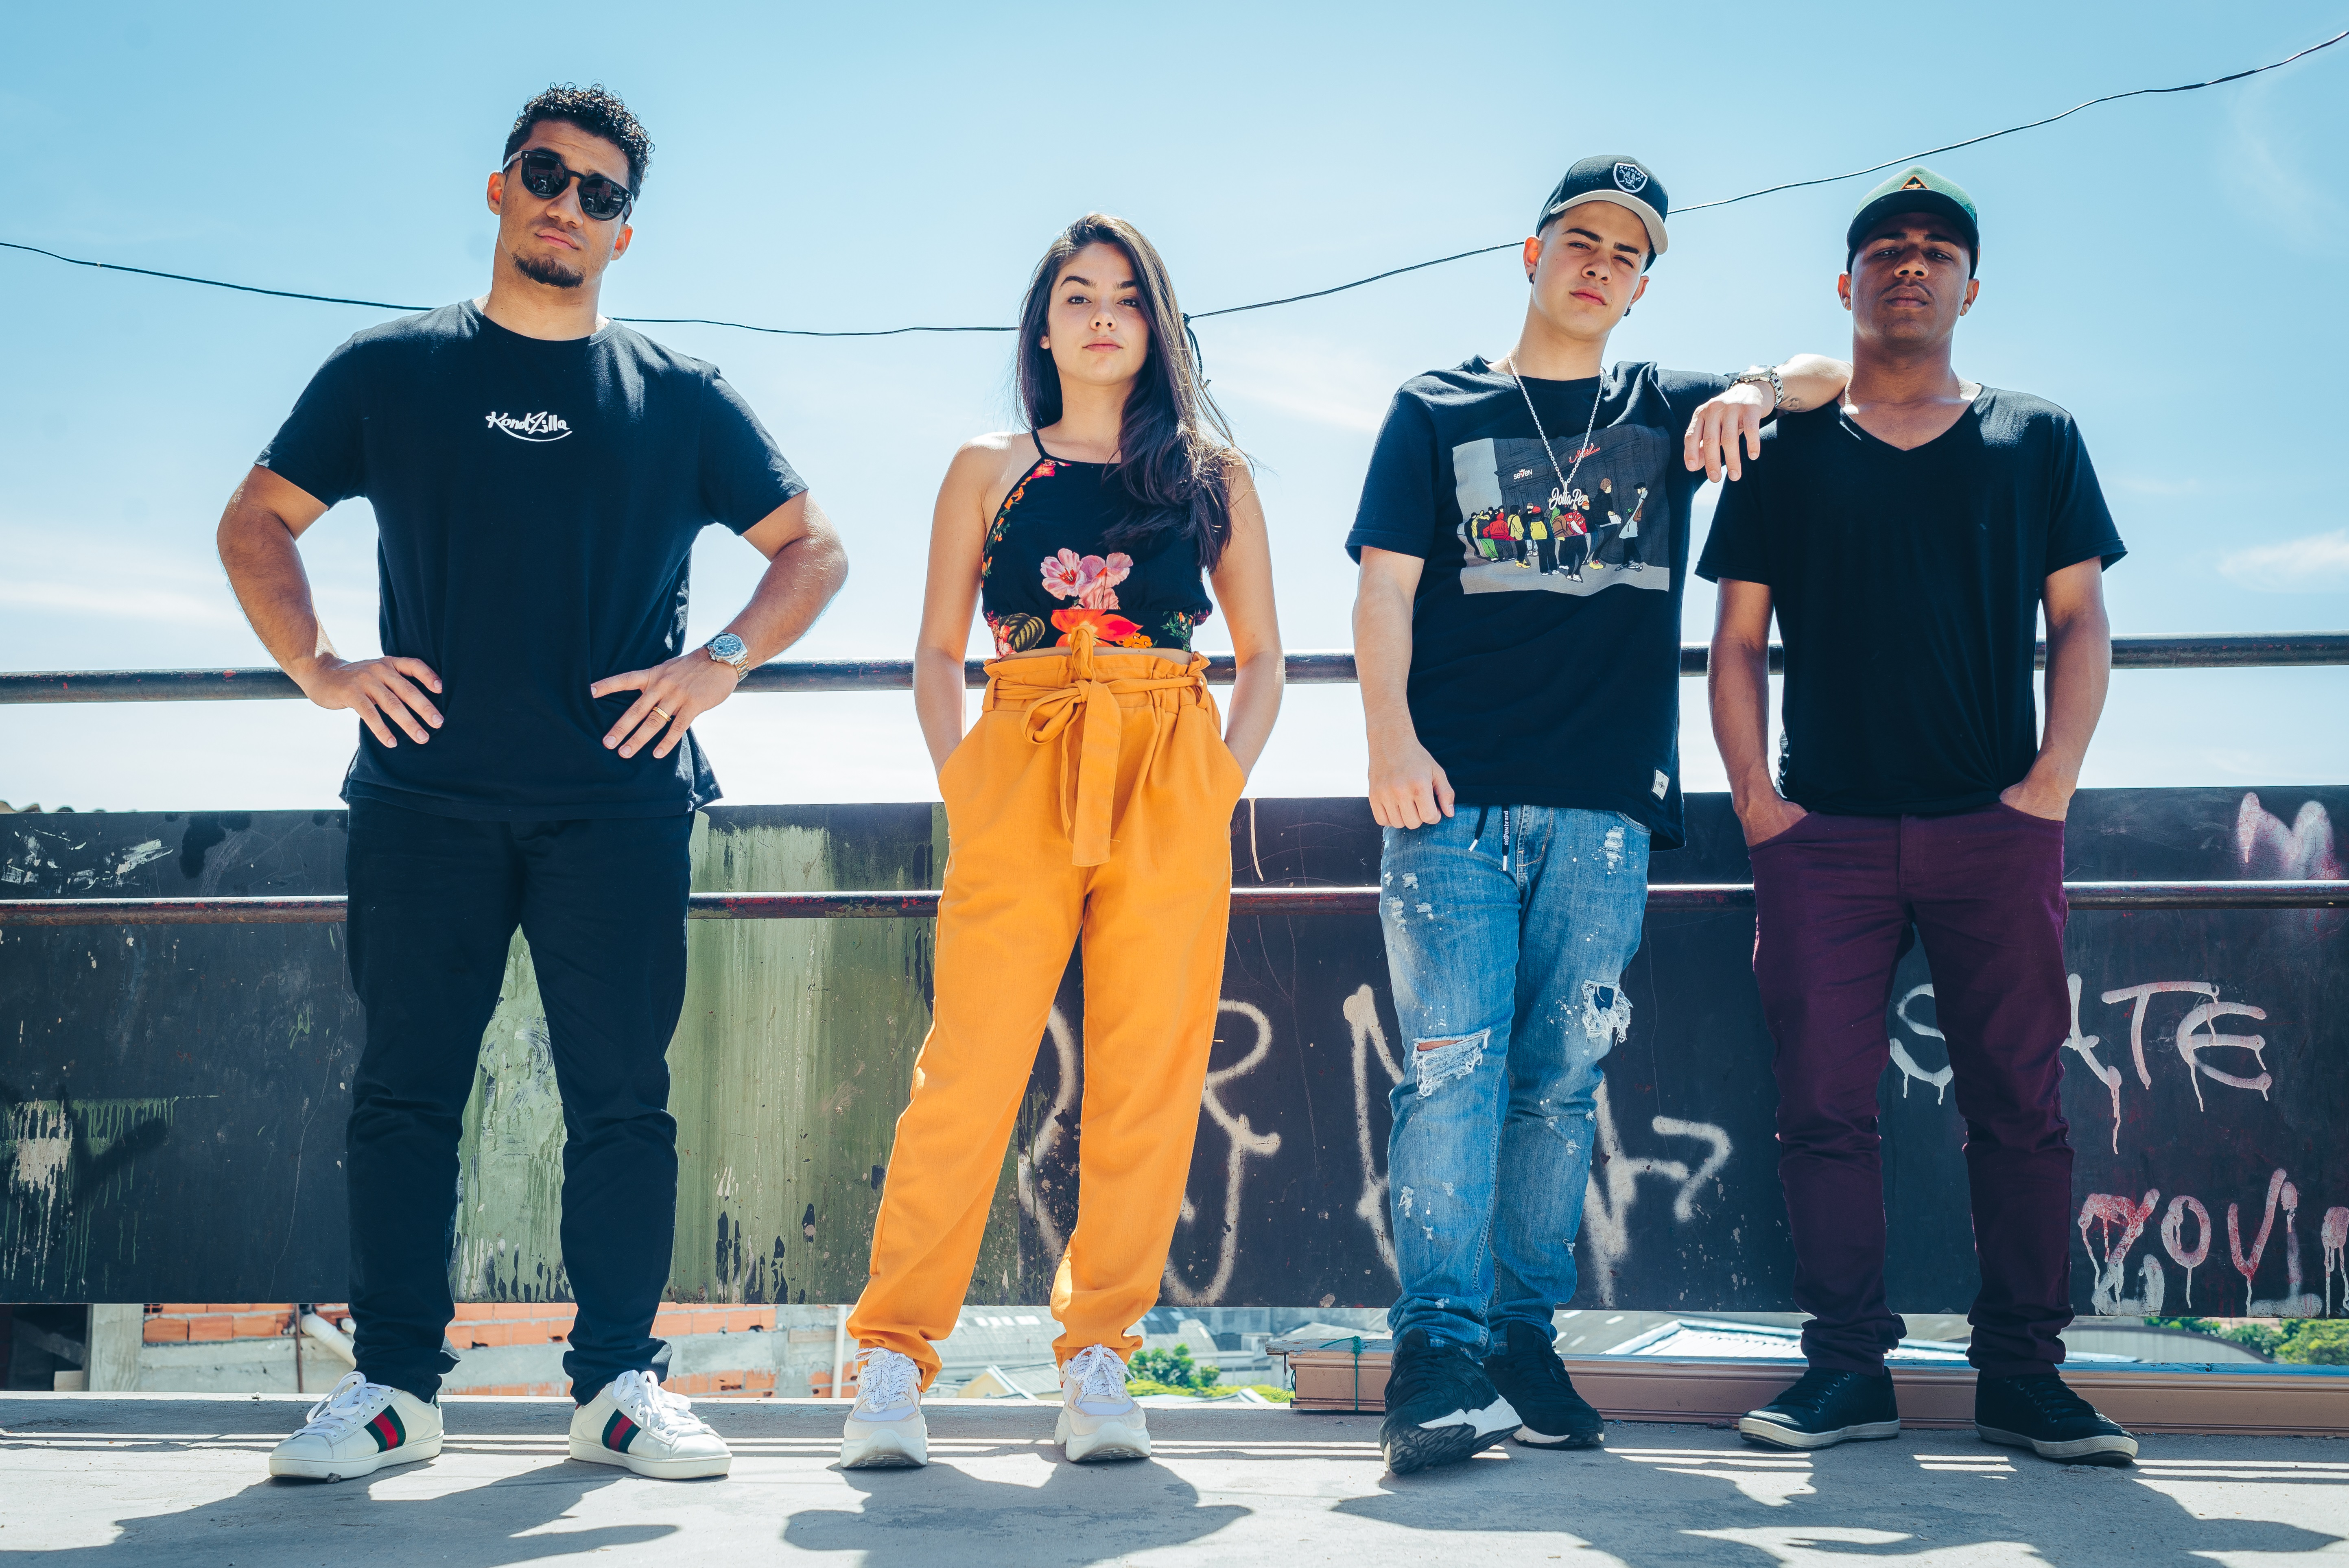 TRAILER: Brazilian Series 'Sintonia' Is a Brightly Colored World With a Funk Paulista Soundtrack